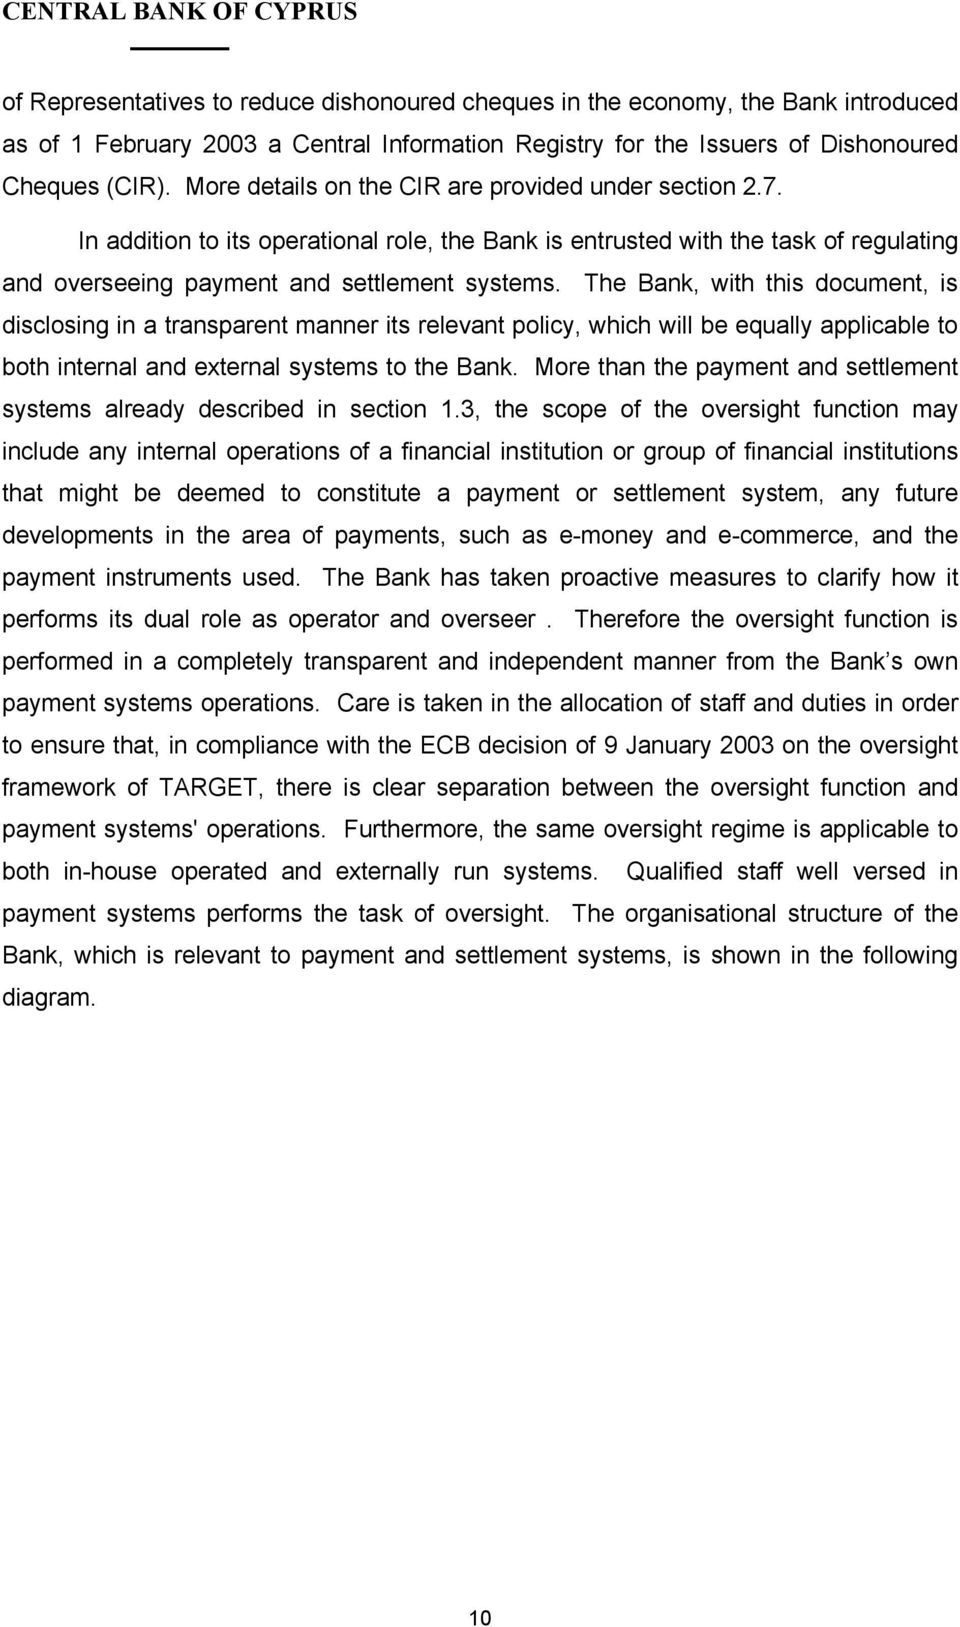 The Bank, with this document, is disclosing in a transparent manner its relevant policy, which will be equally applicable to both internal and external systems to the Bank.